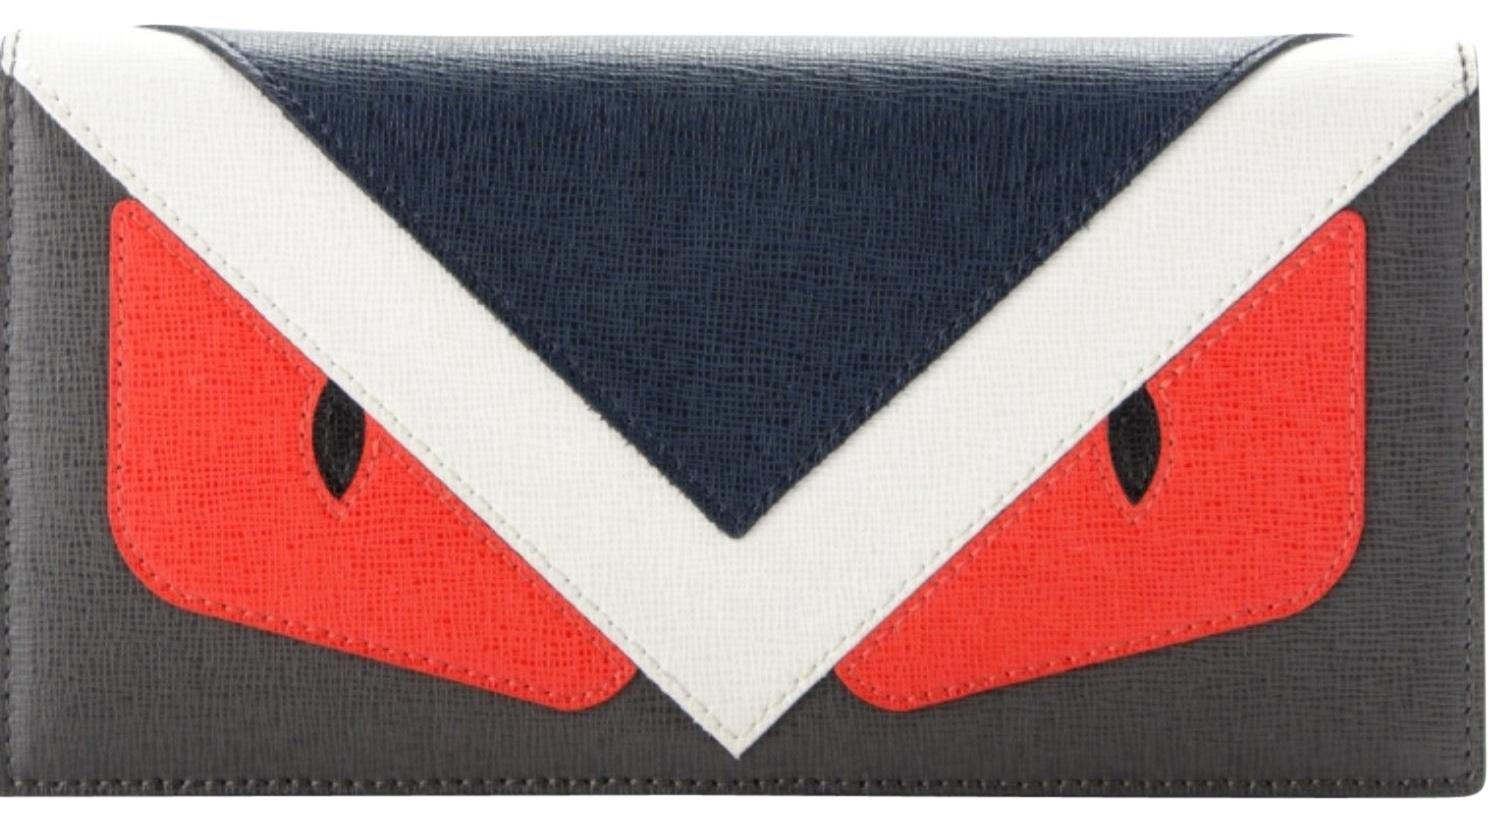 e3283b701b ... buy fendi wallets on sale up to 70 off at tradesy 817ef 48fae